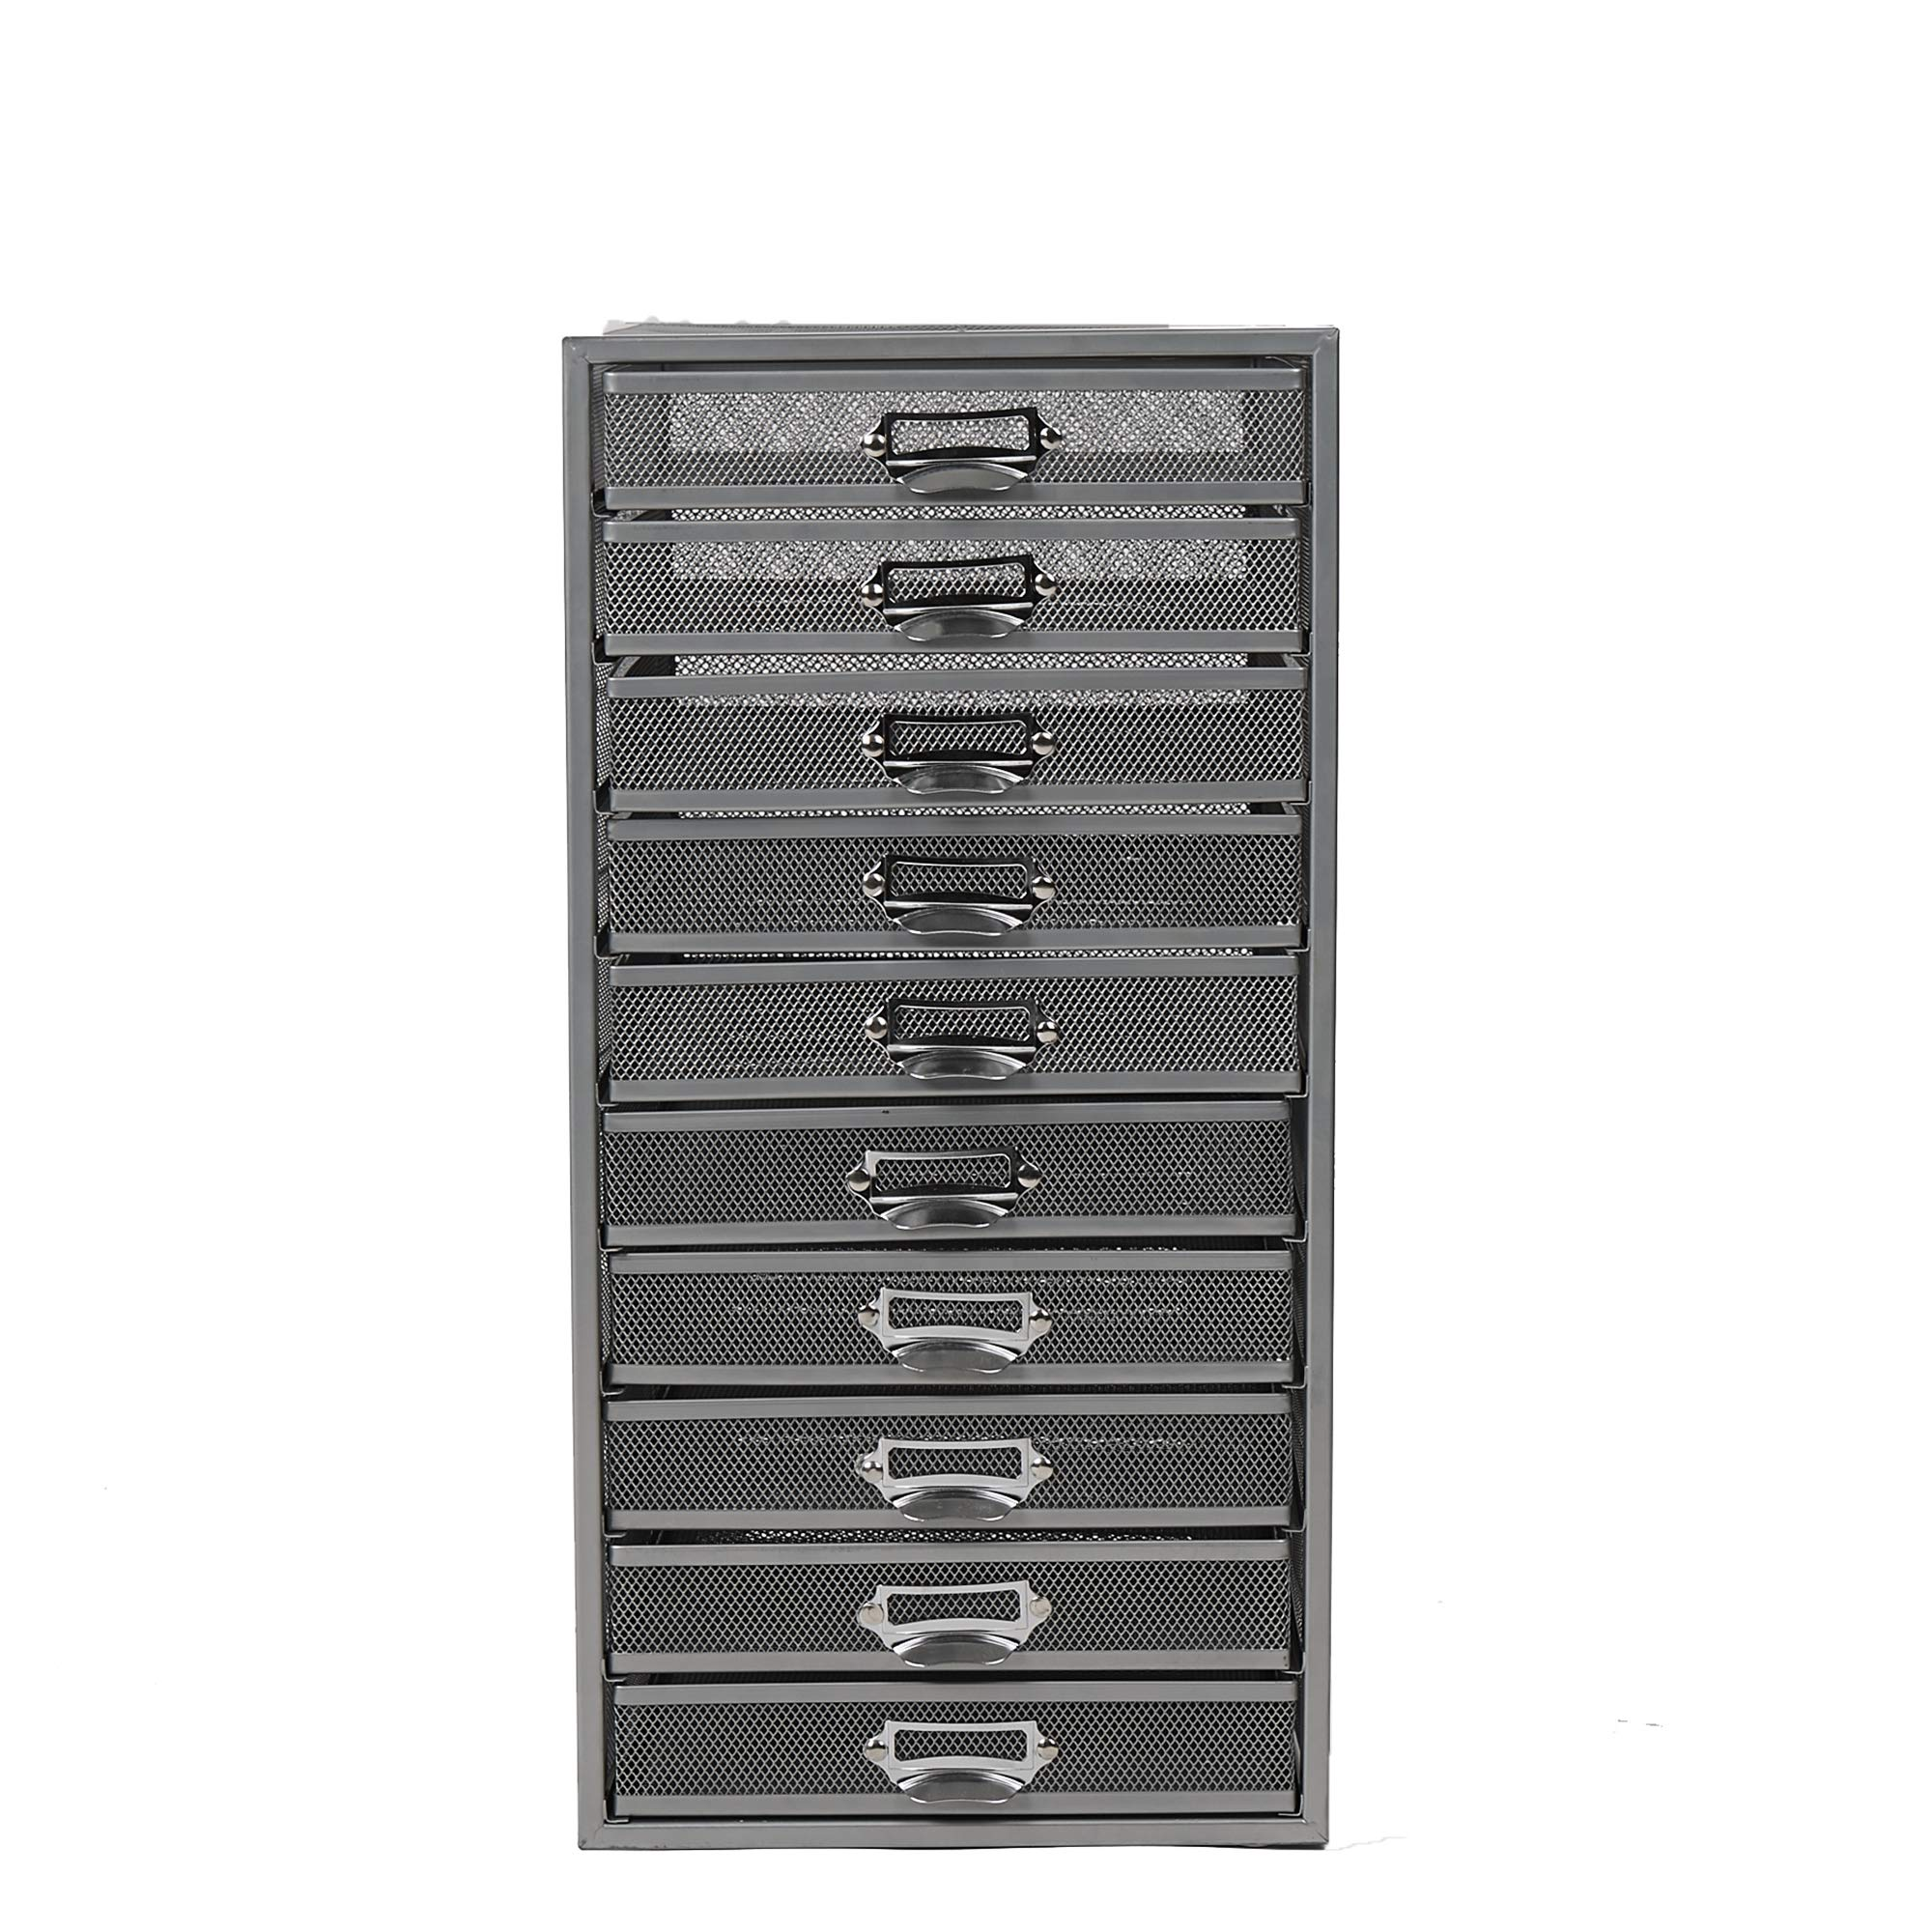 Mind Reader 10CABMESH-SIL Mesh 10 Cabinet, Metal Drawers, File, Utility, Office Storage, Heavy Duty Multi-Purpose Cart, Silver by Mind Reader